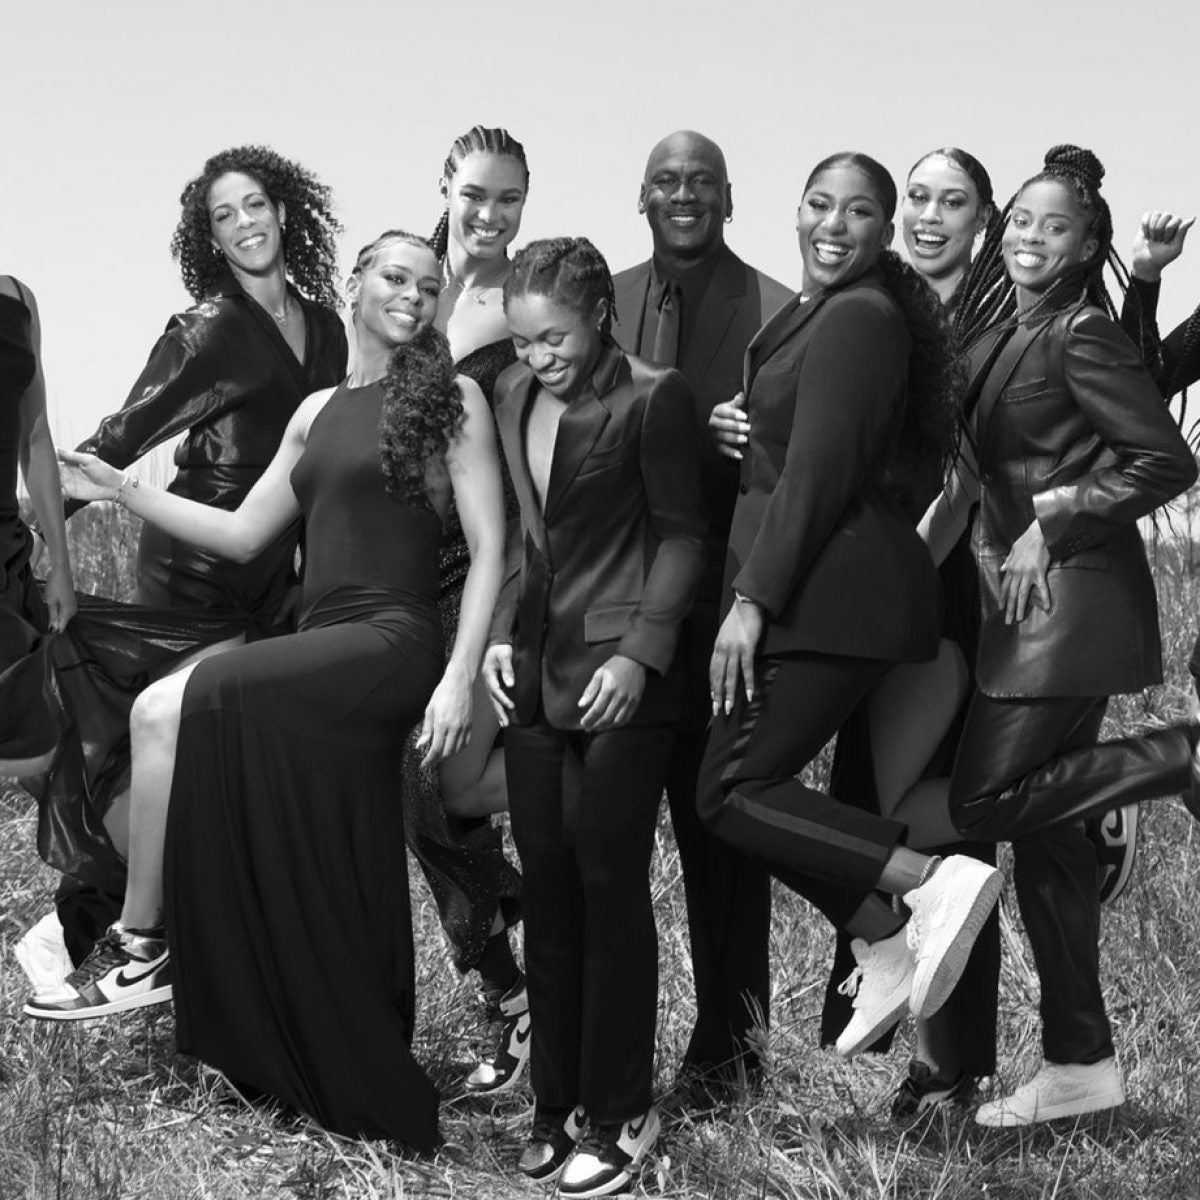 Jordan Brand Partners With Largest Group of Jumpman WNBA Endorsees, Makes History